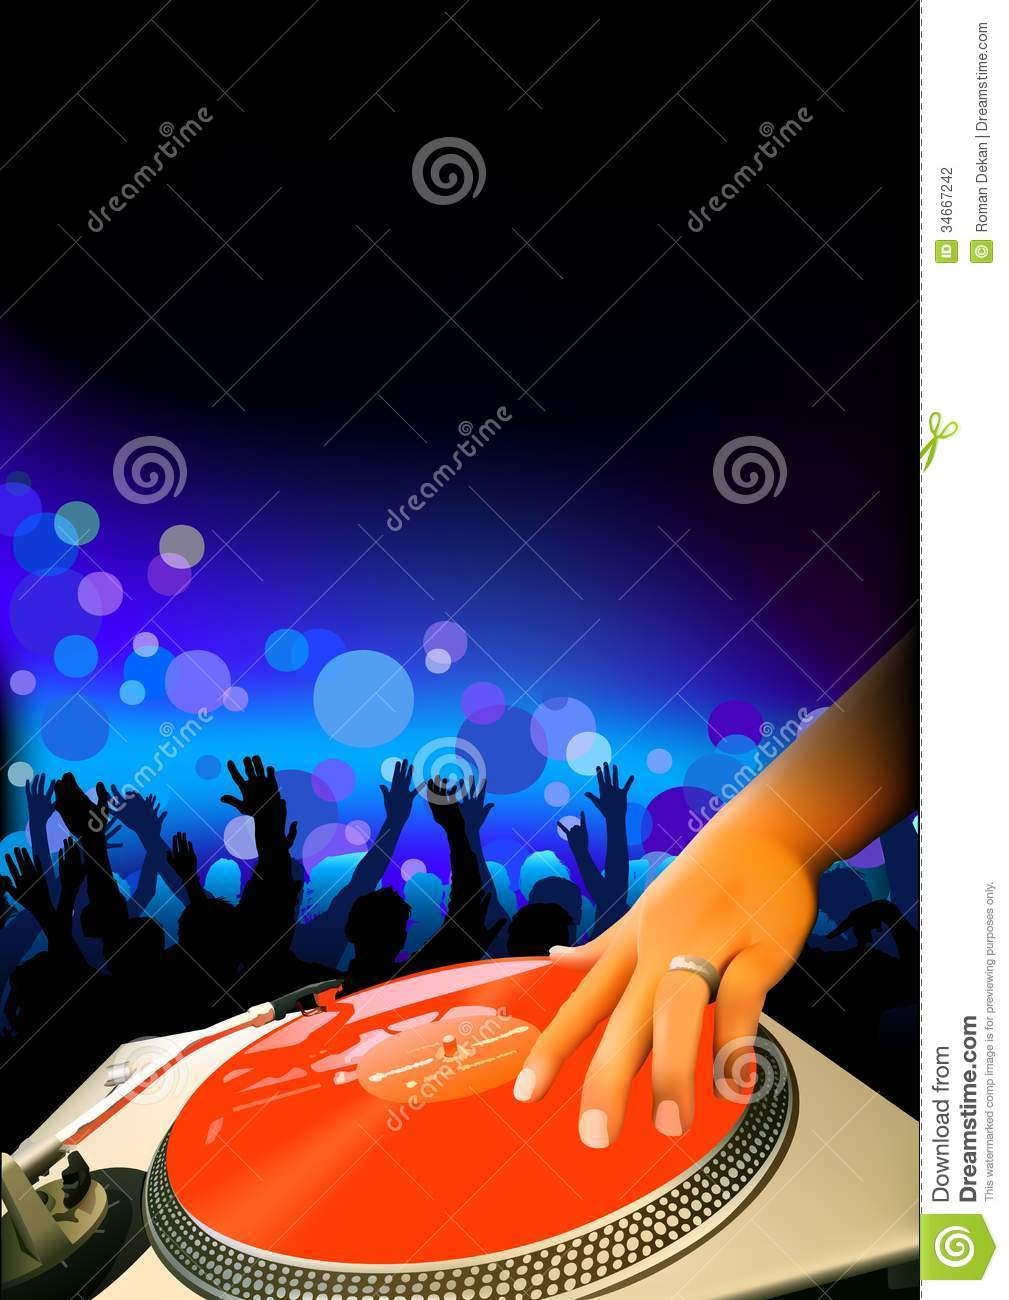 DJ And Audience stock vector. Image of hand, party ...